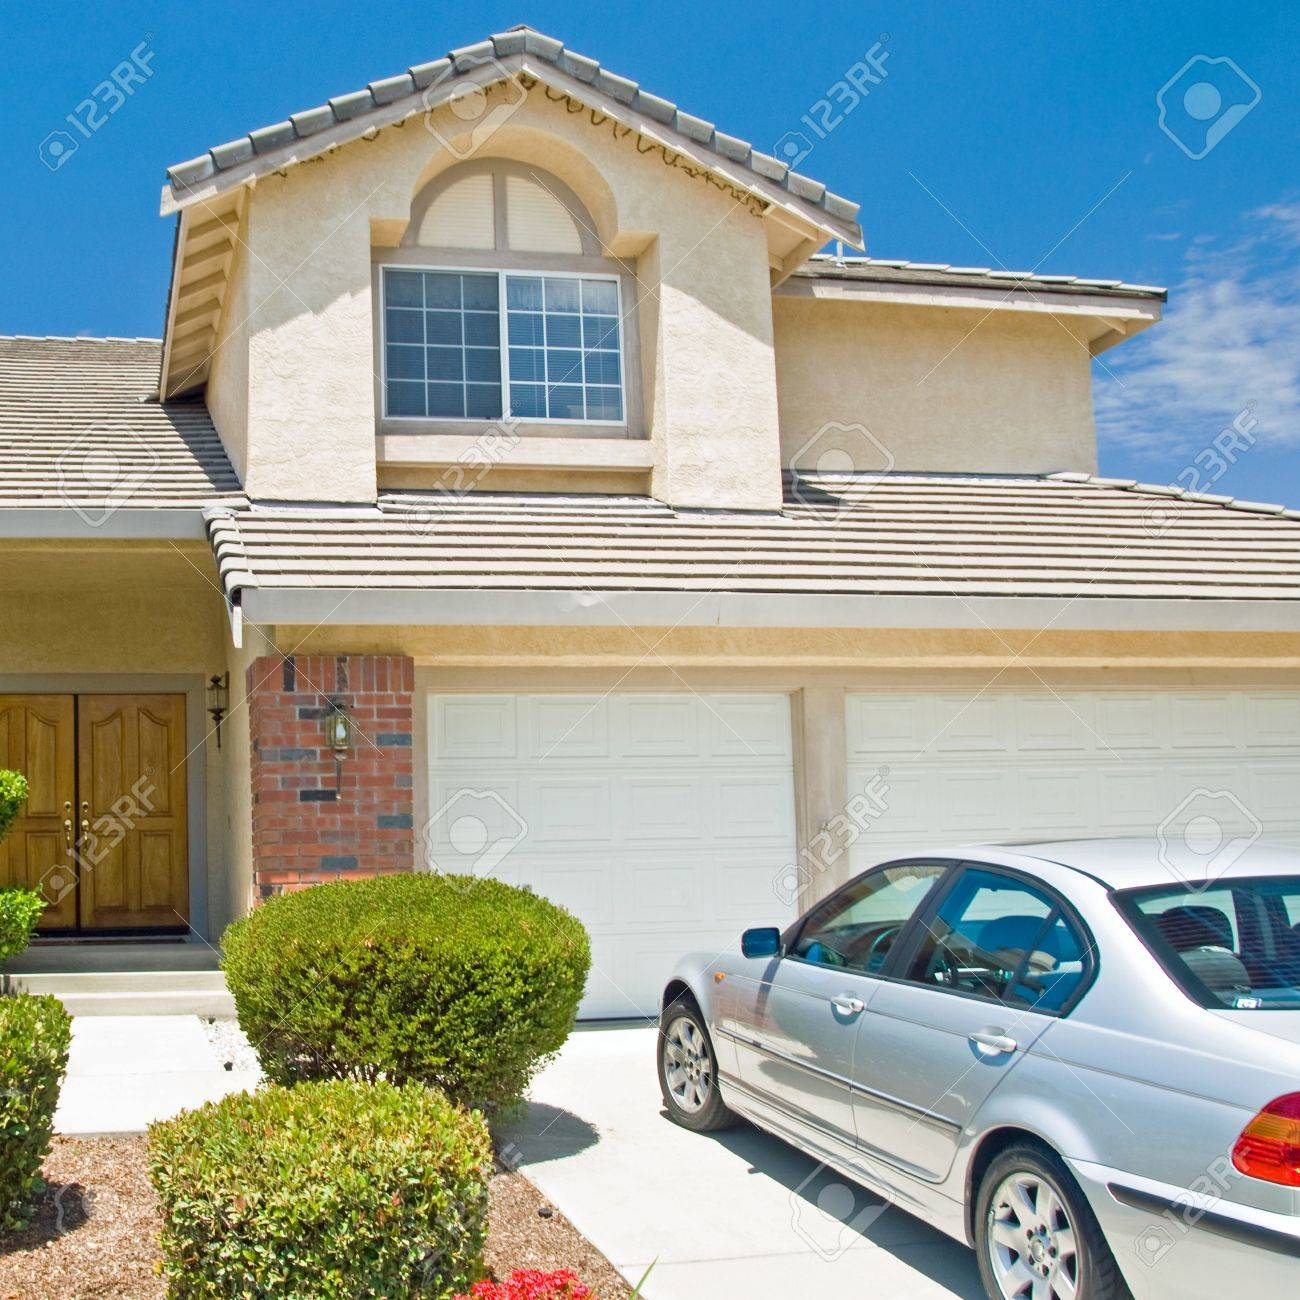 New American dream home with a beautiful blue sky in background and brand new car parked outside. Stock Photo - 18479343